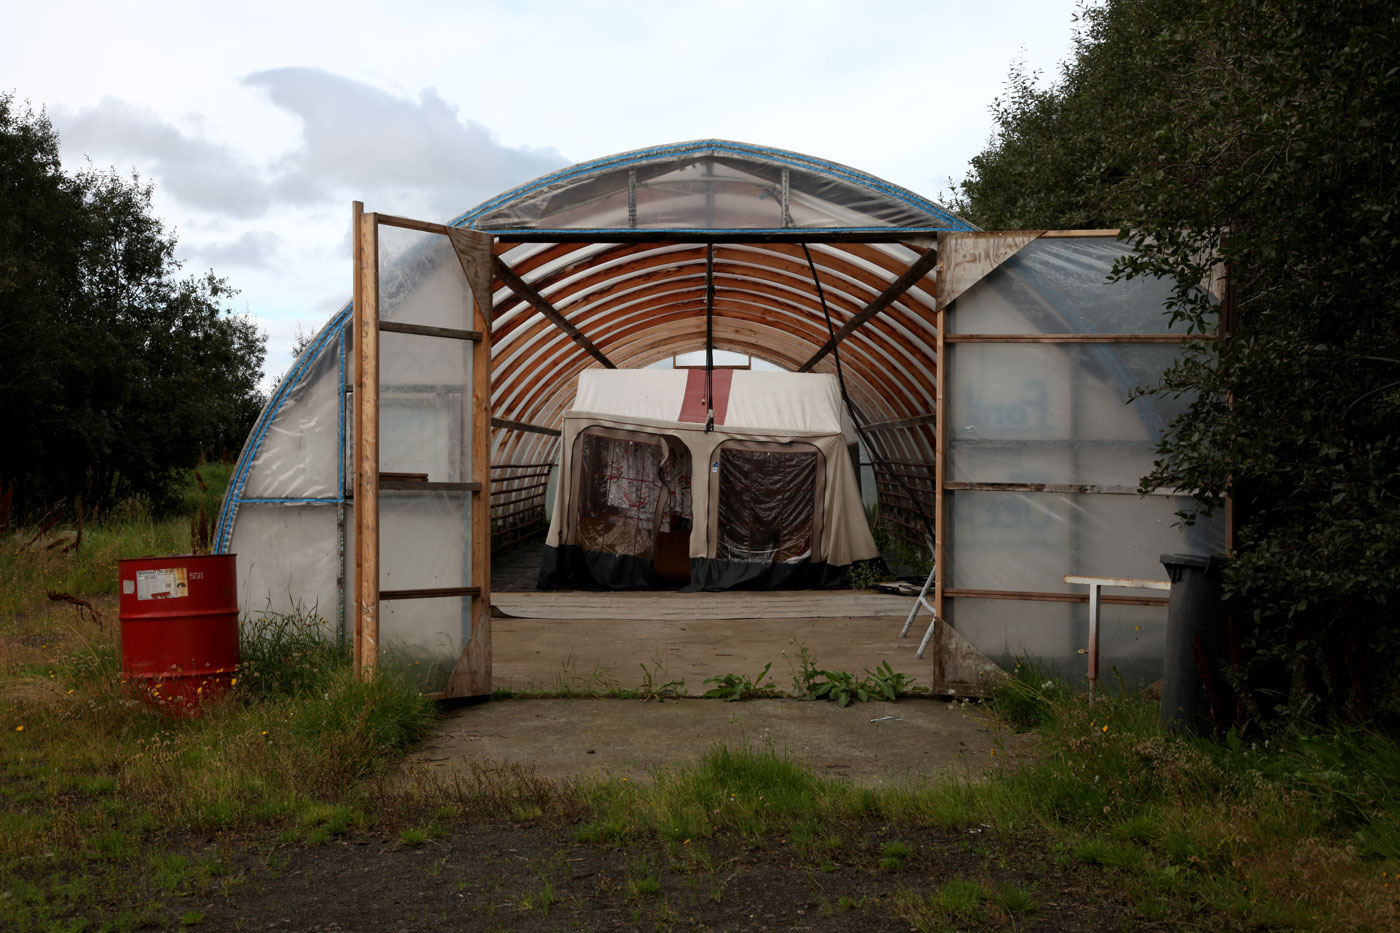 Accommodation for tomato pickers at Fluoir, Iceland